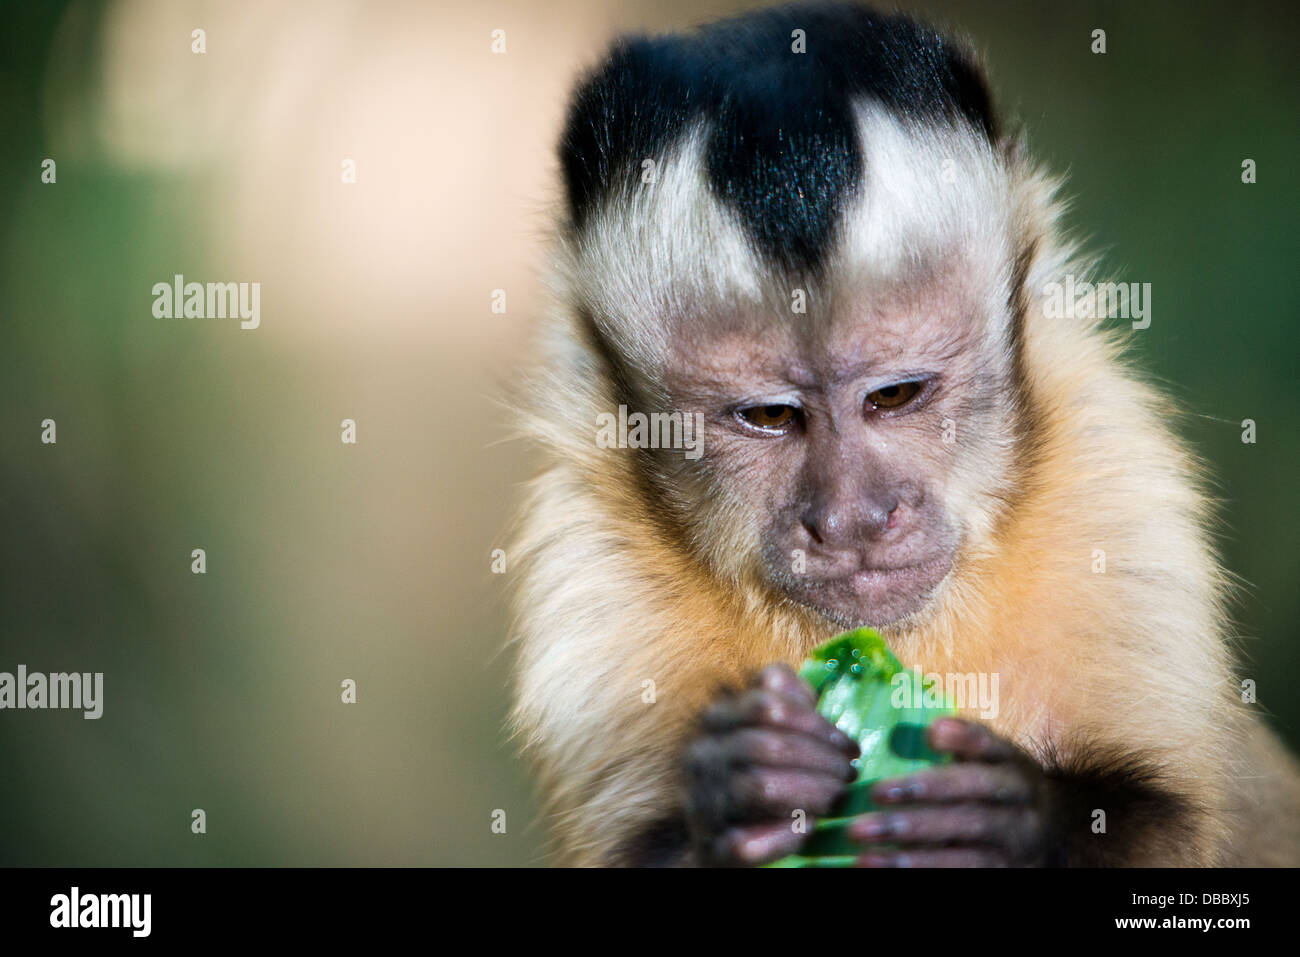 A close-up of the expressive face of a capuchin monkey eating Stock Photo